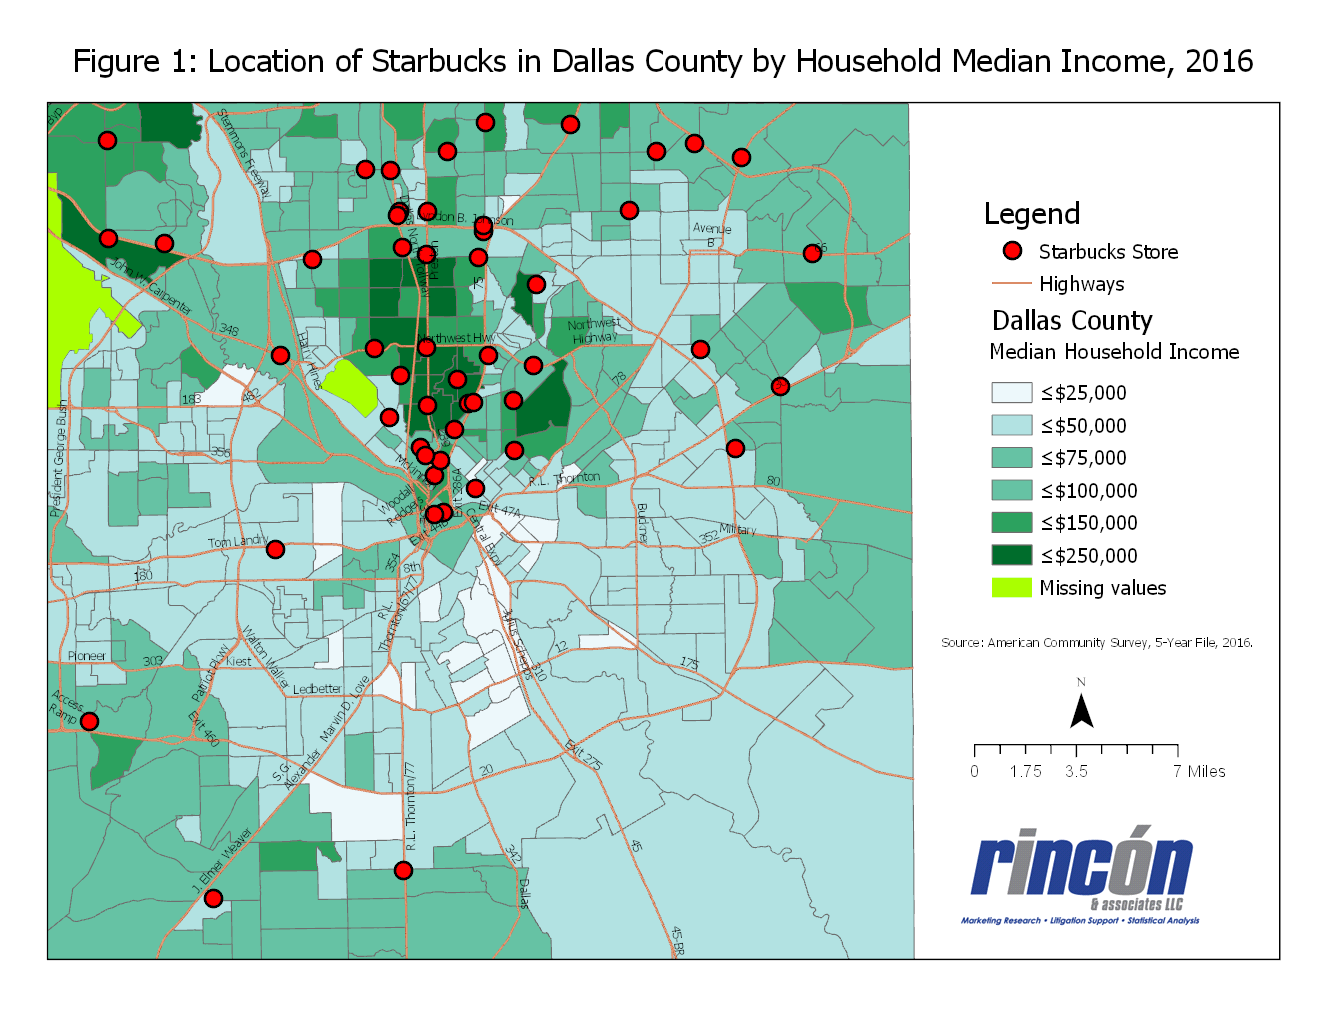 even communities with median incomes of 100 o00 or higher in the south west and southeast part of dallas county reveal few starbucks stores